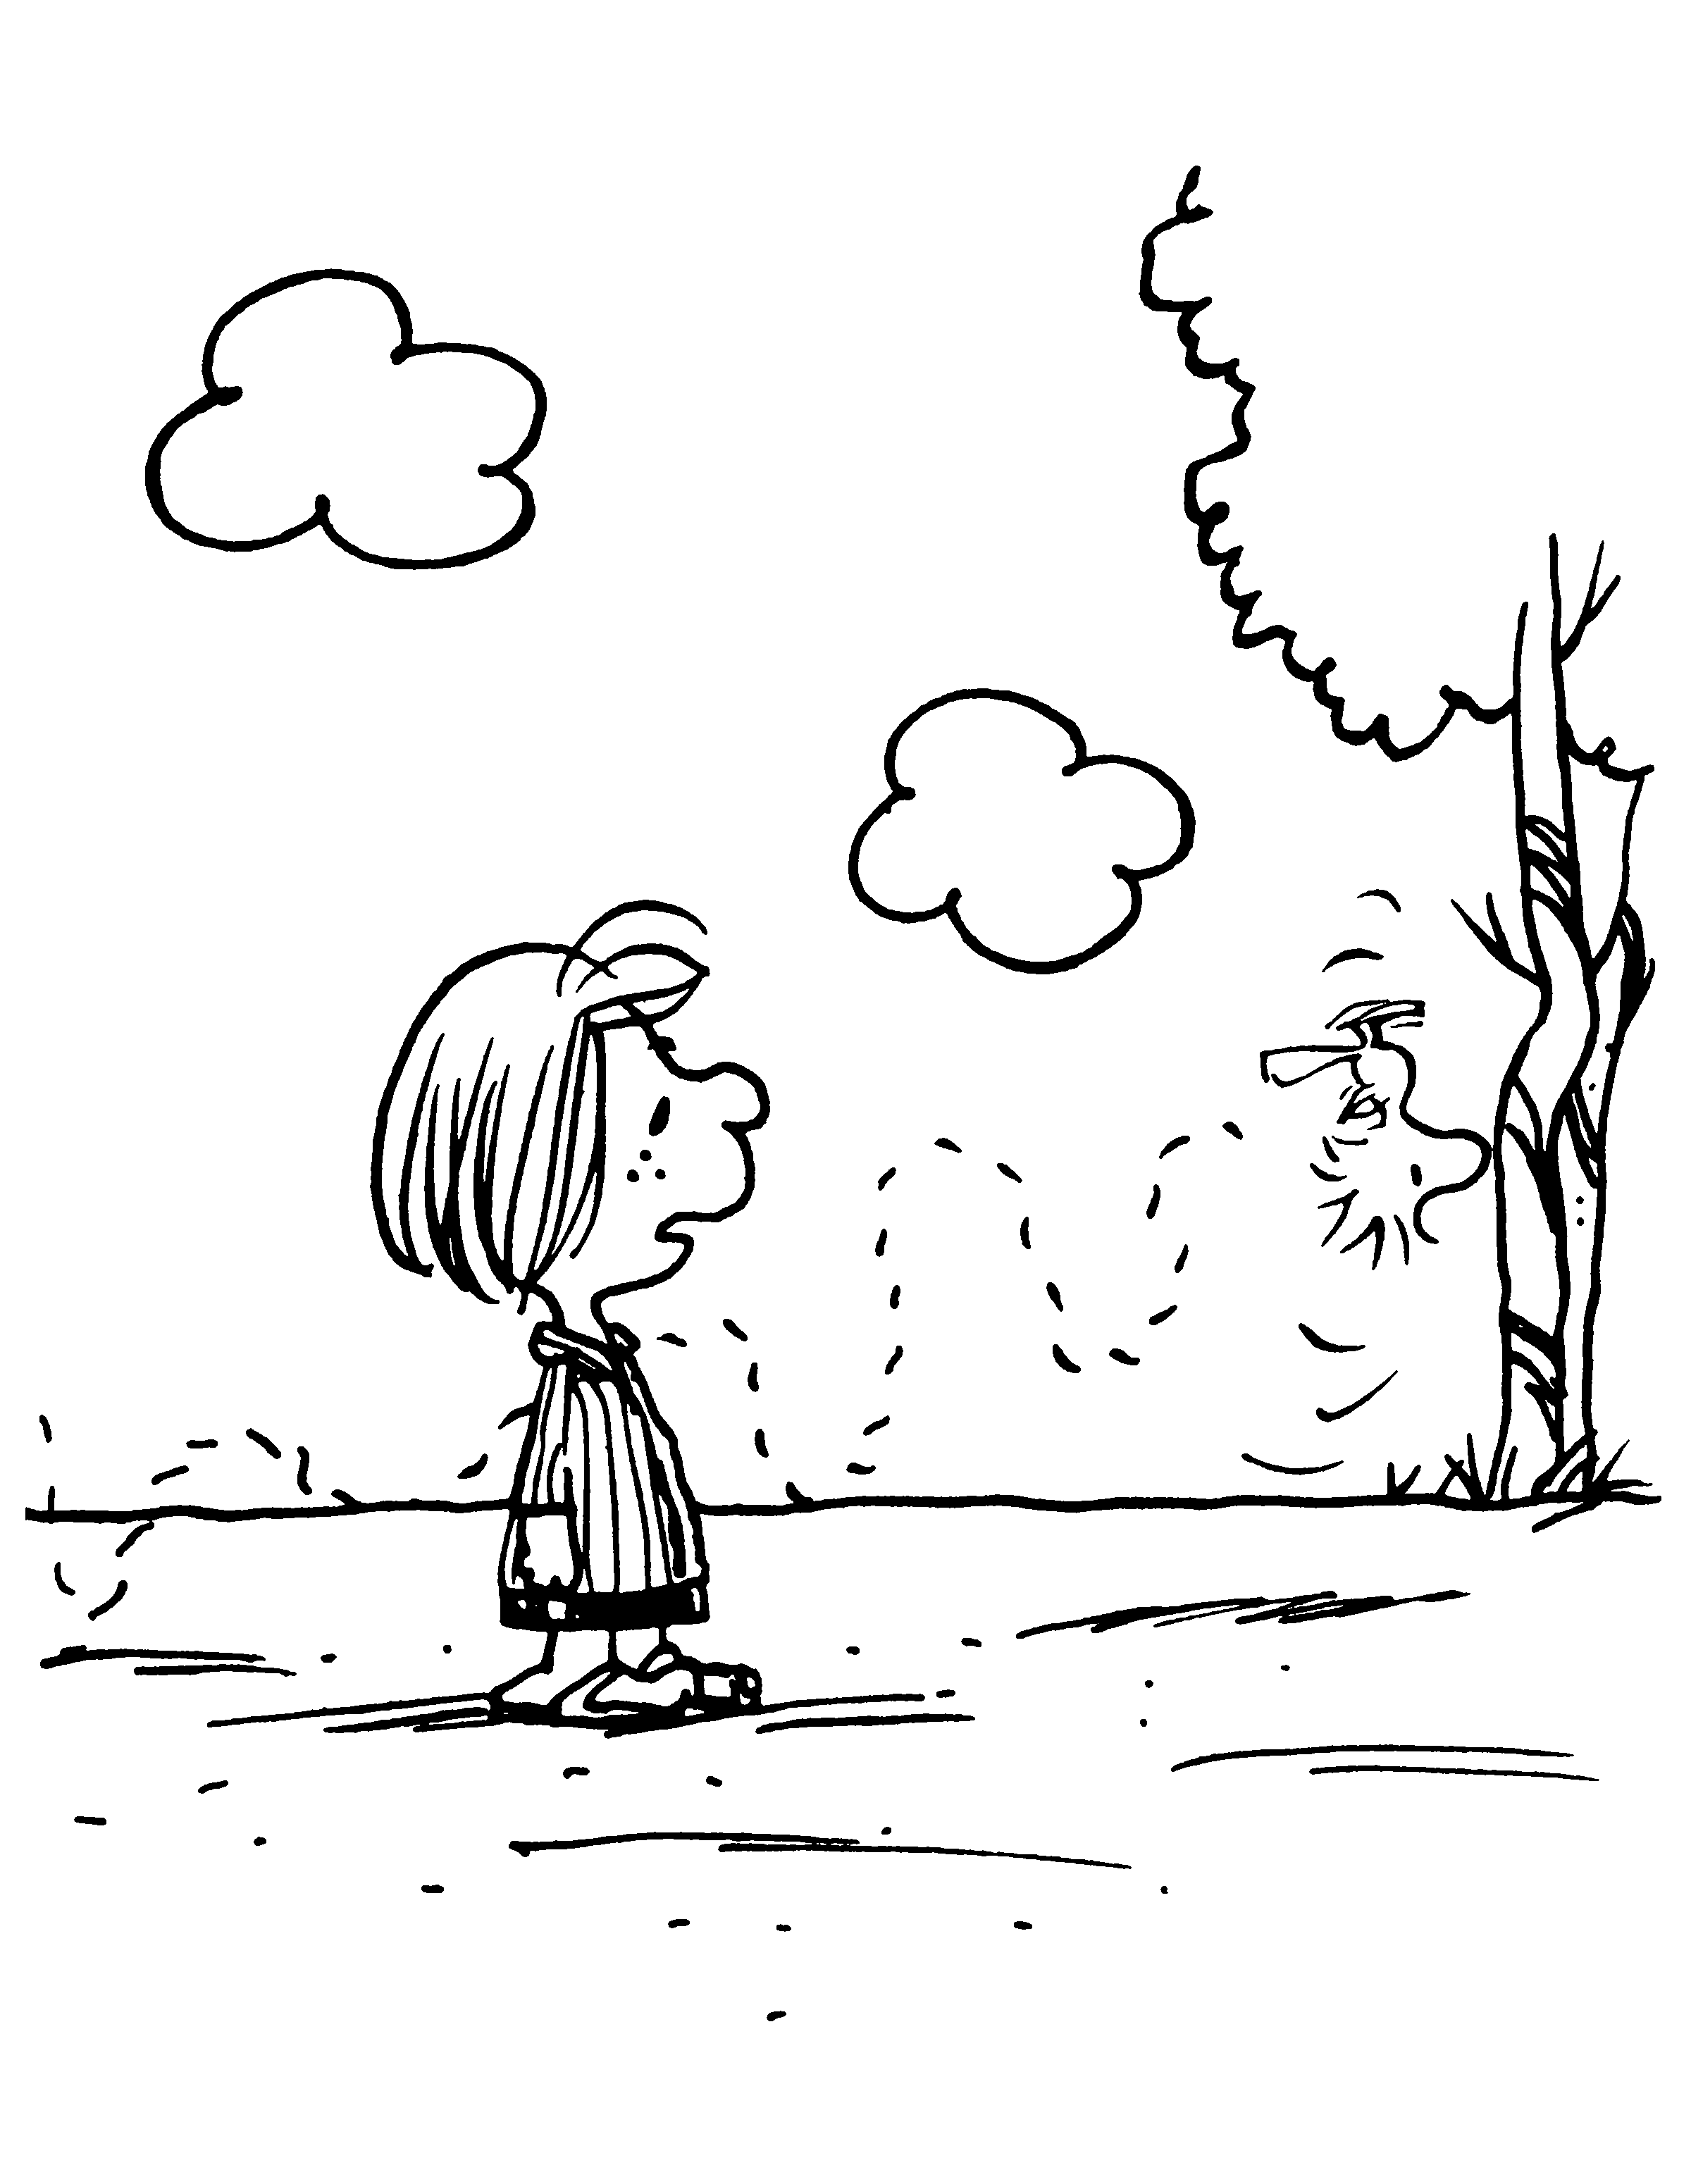 peppermint patty en woodstock snoopy coloring pages